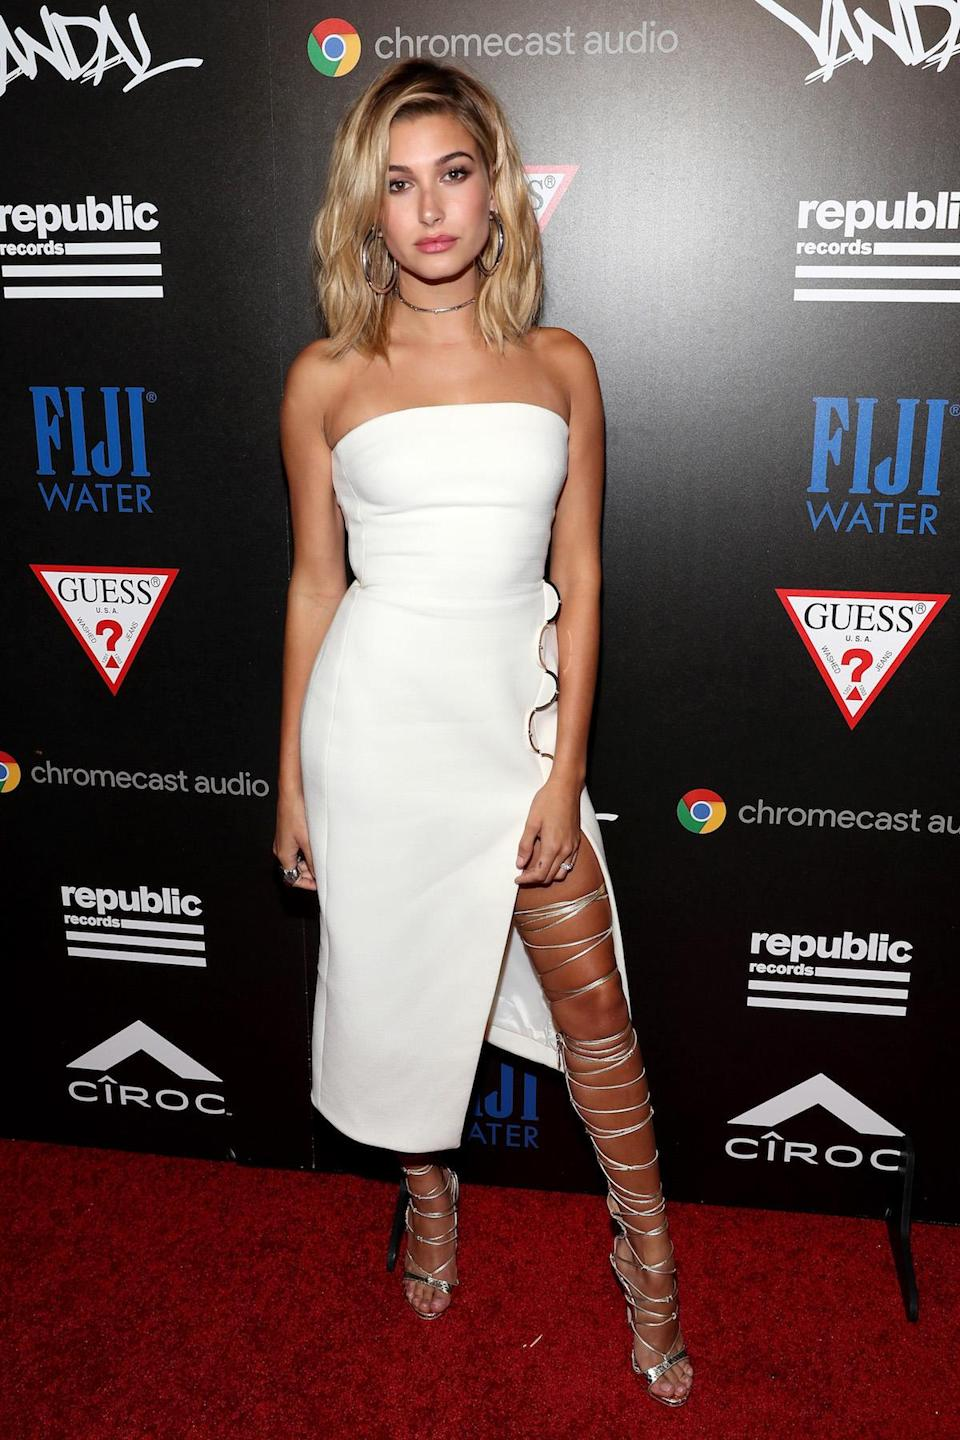 <p>Baldwin features the Jennifer Fisher Samira Hoop earrings in her look at the Republic Records and Guess Party in New York. (Photo: Rob Kim/Getty Images for Republic Records) </p>